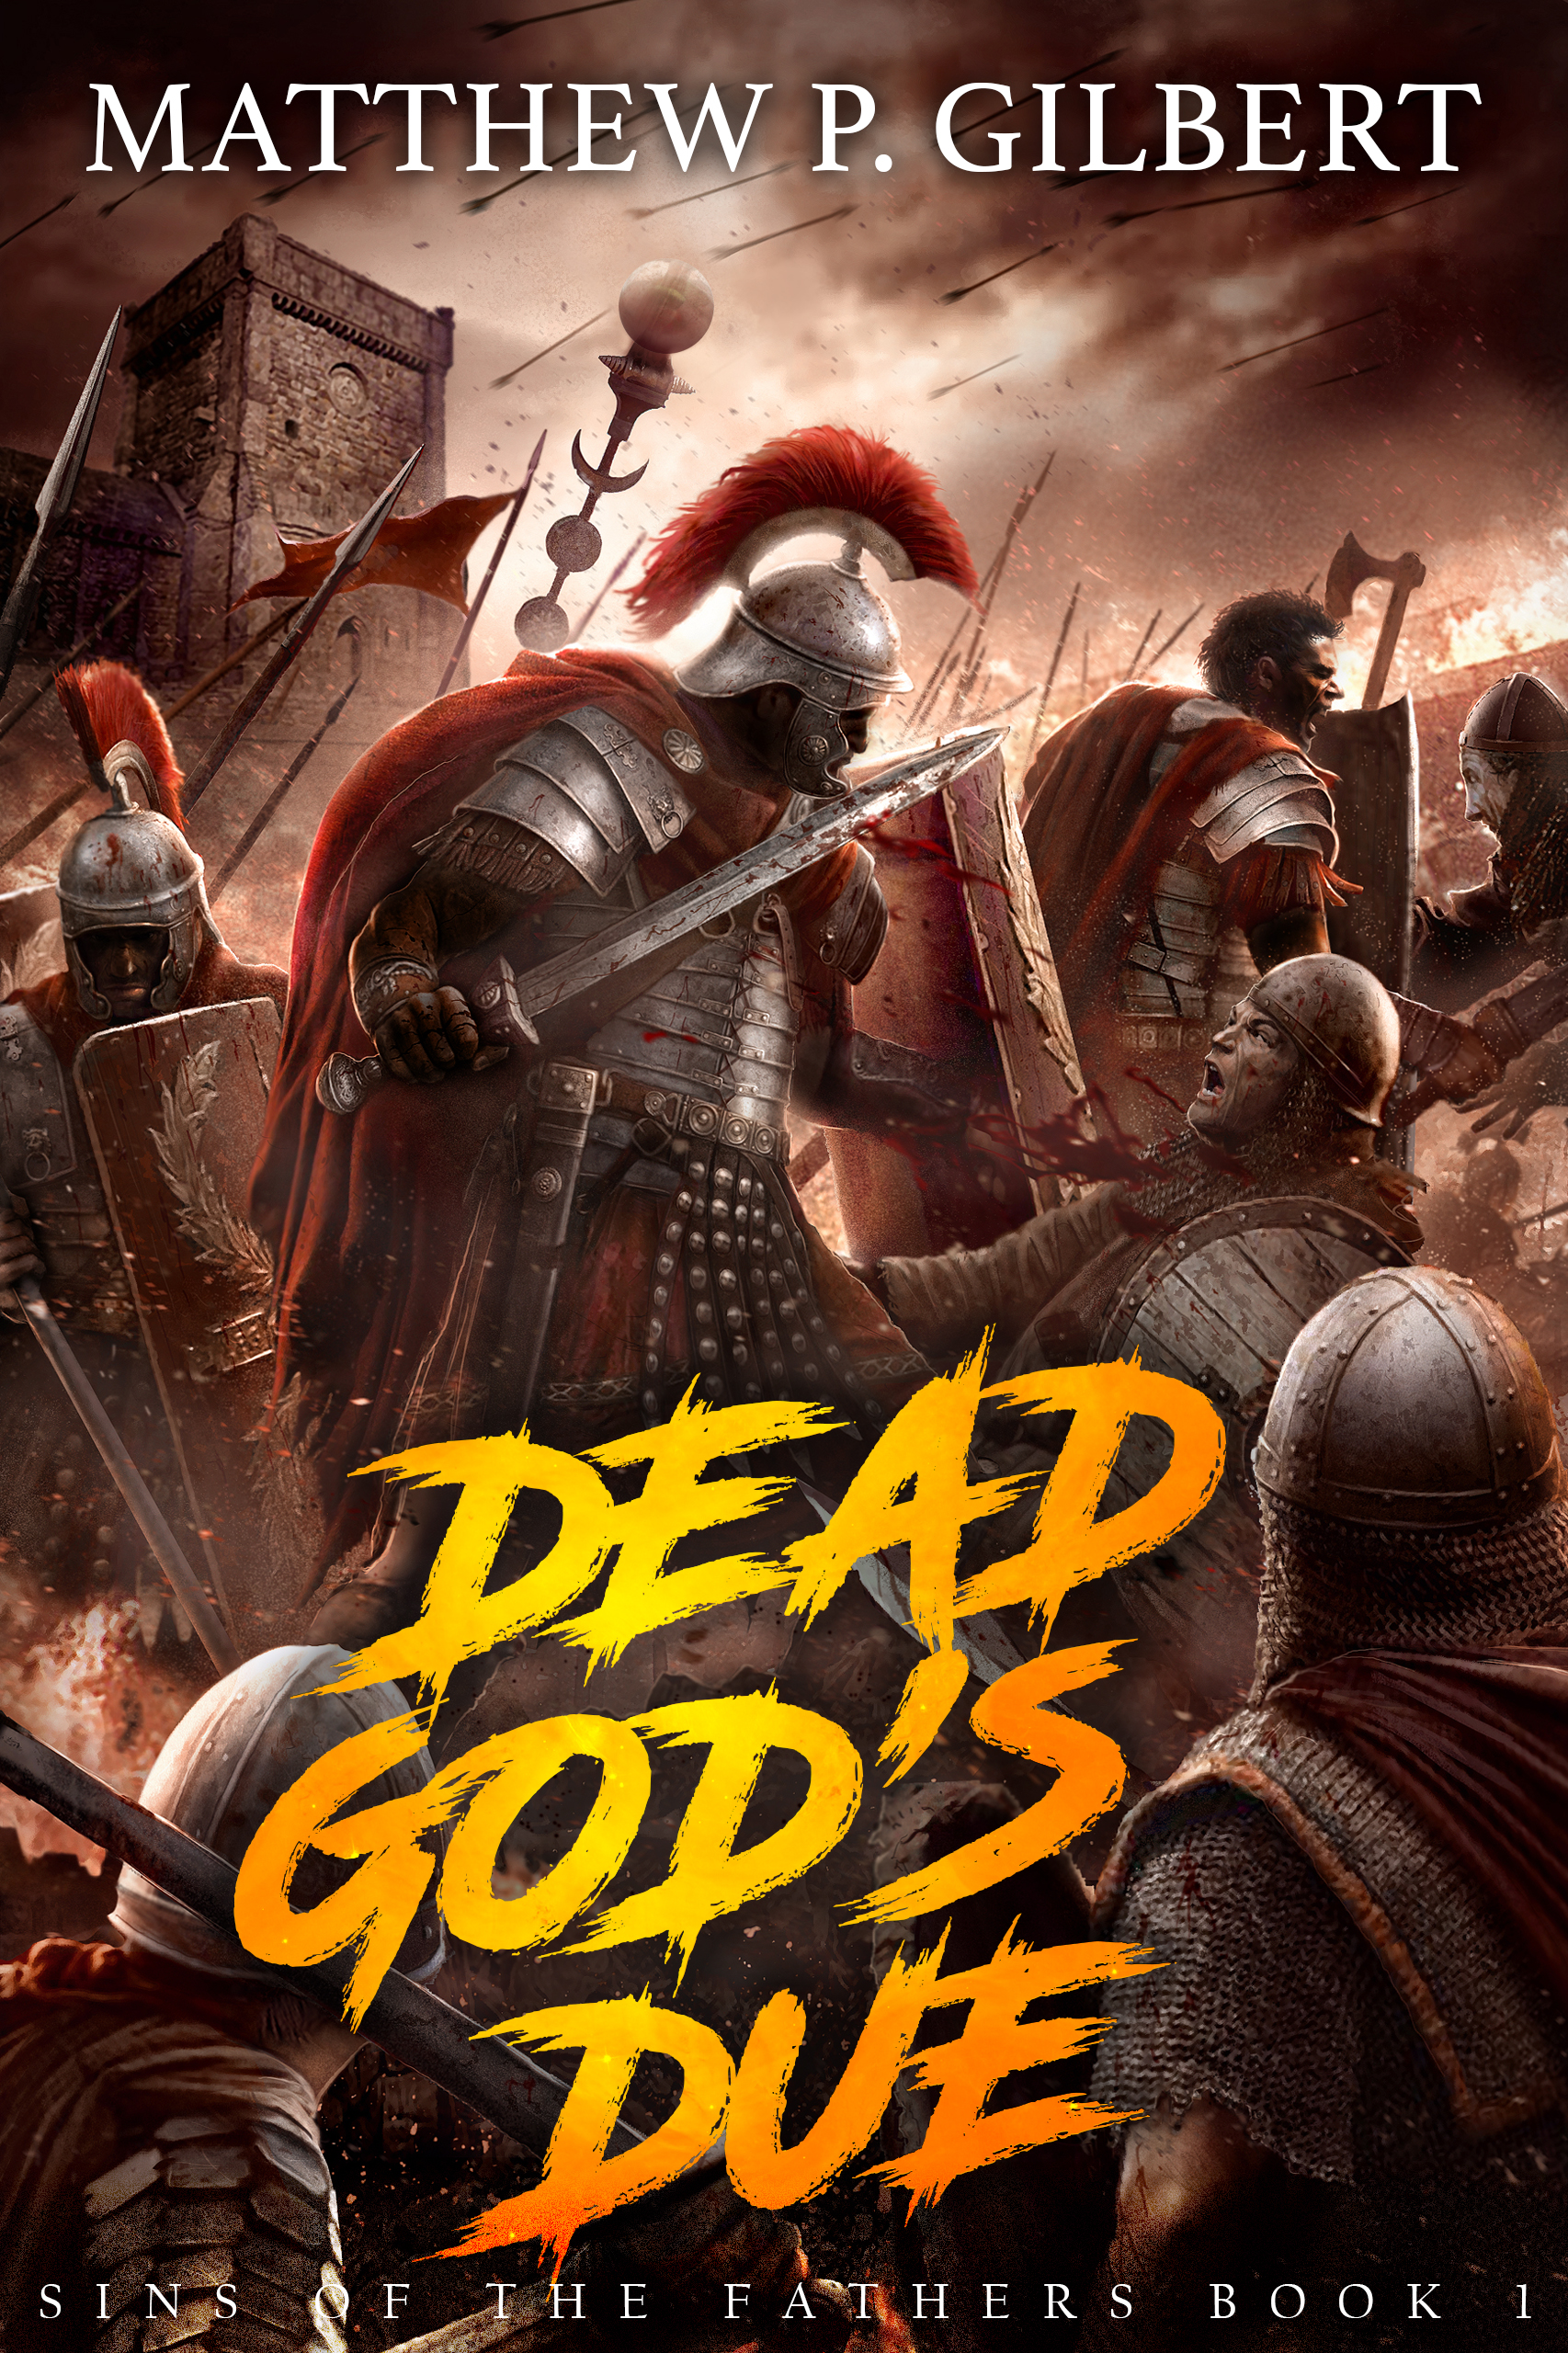 Dead God's Due   Sins of the Fathers Book 1  Matthew P. Gilbert